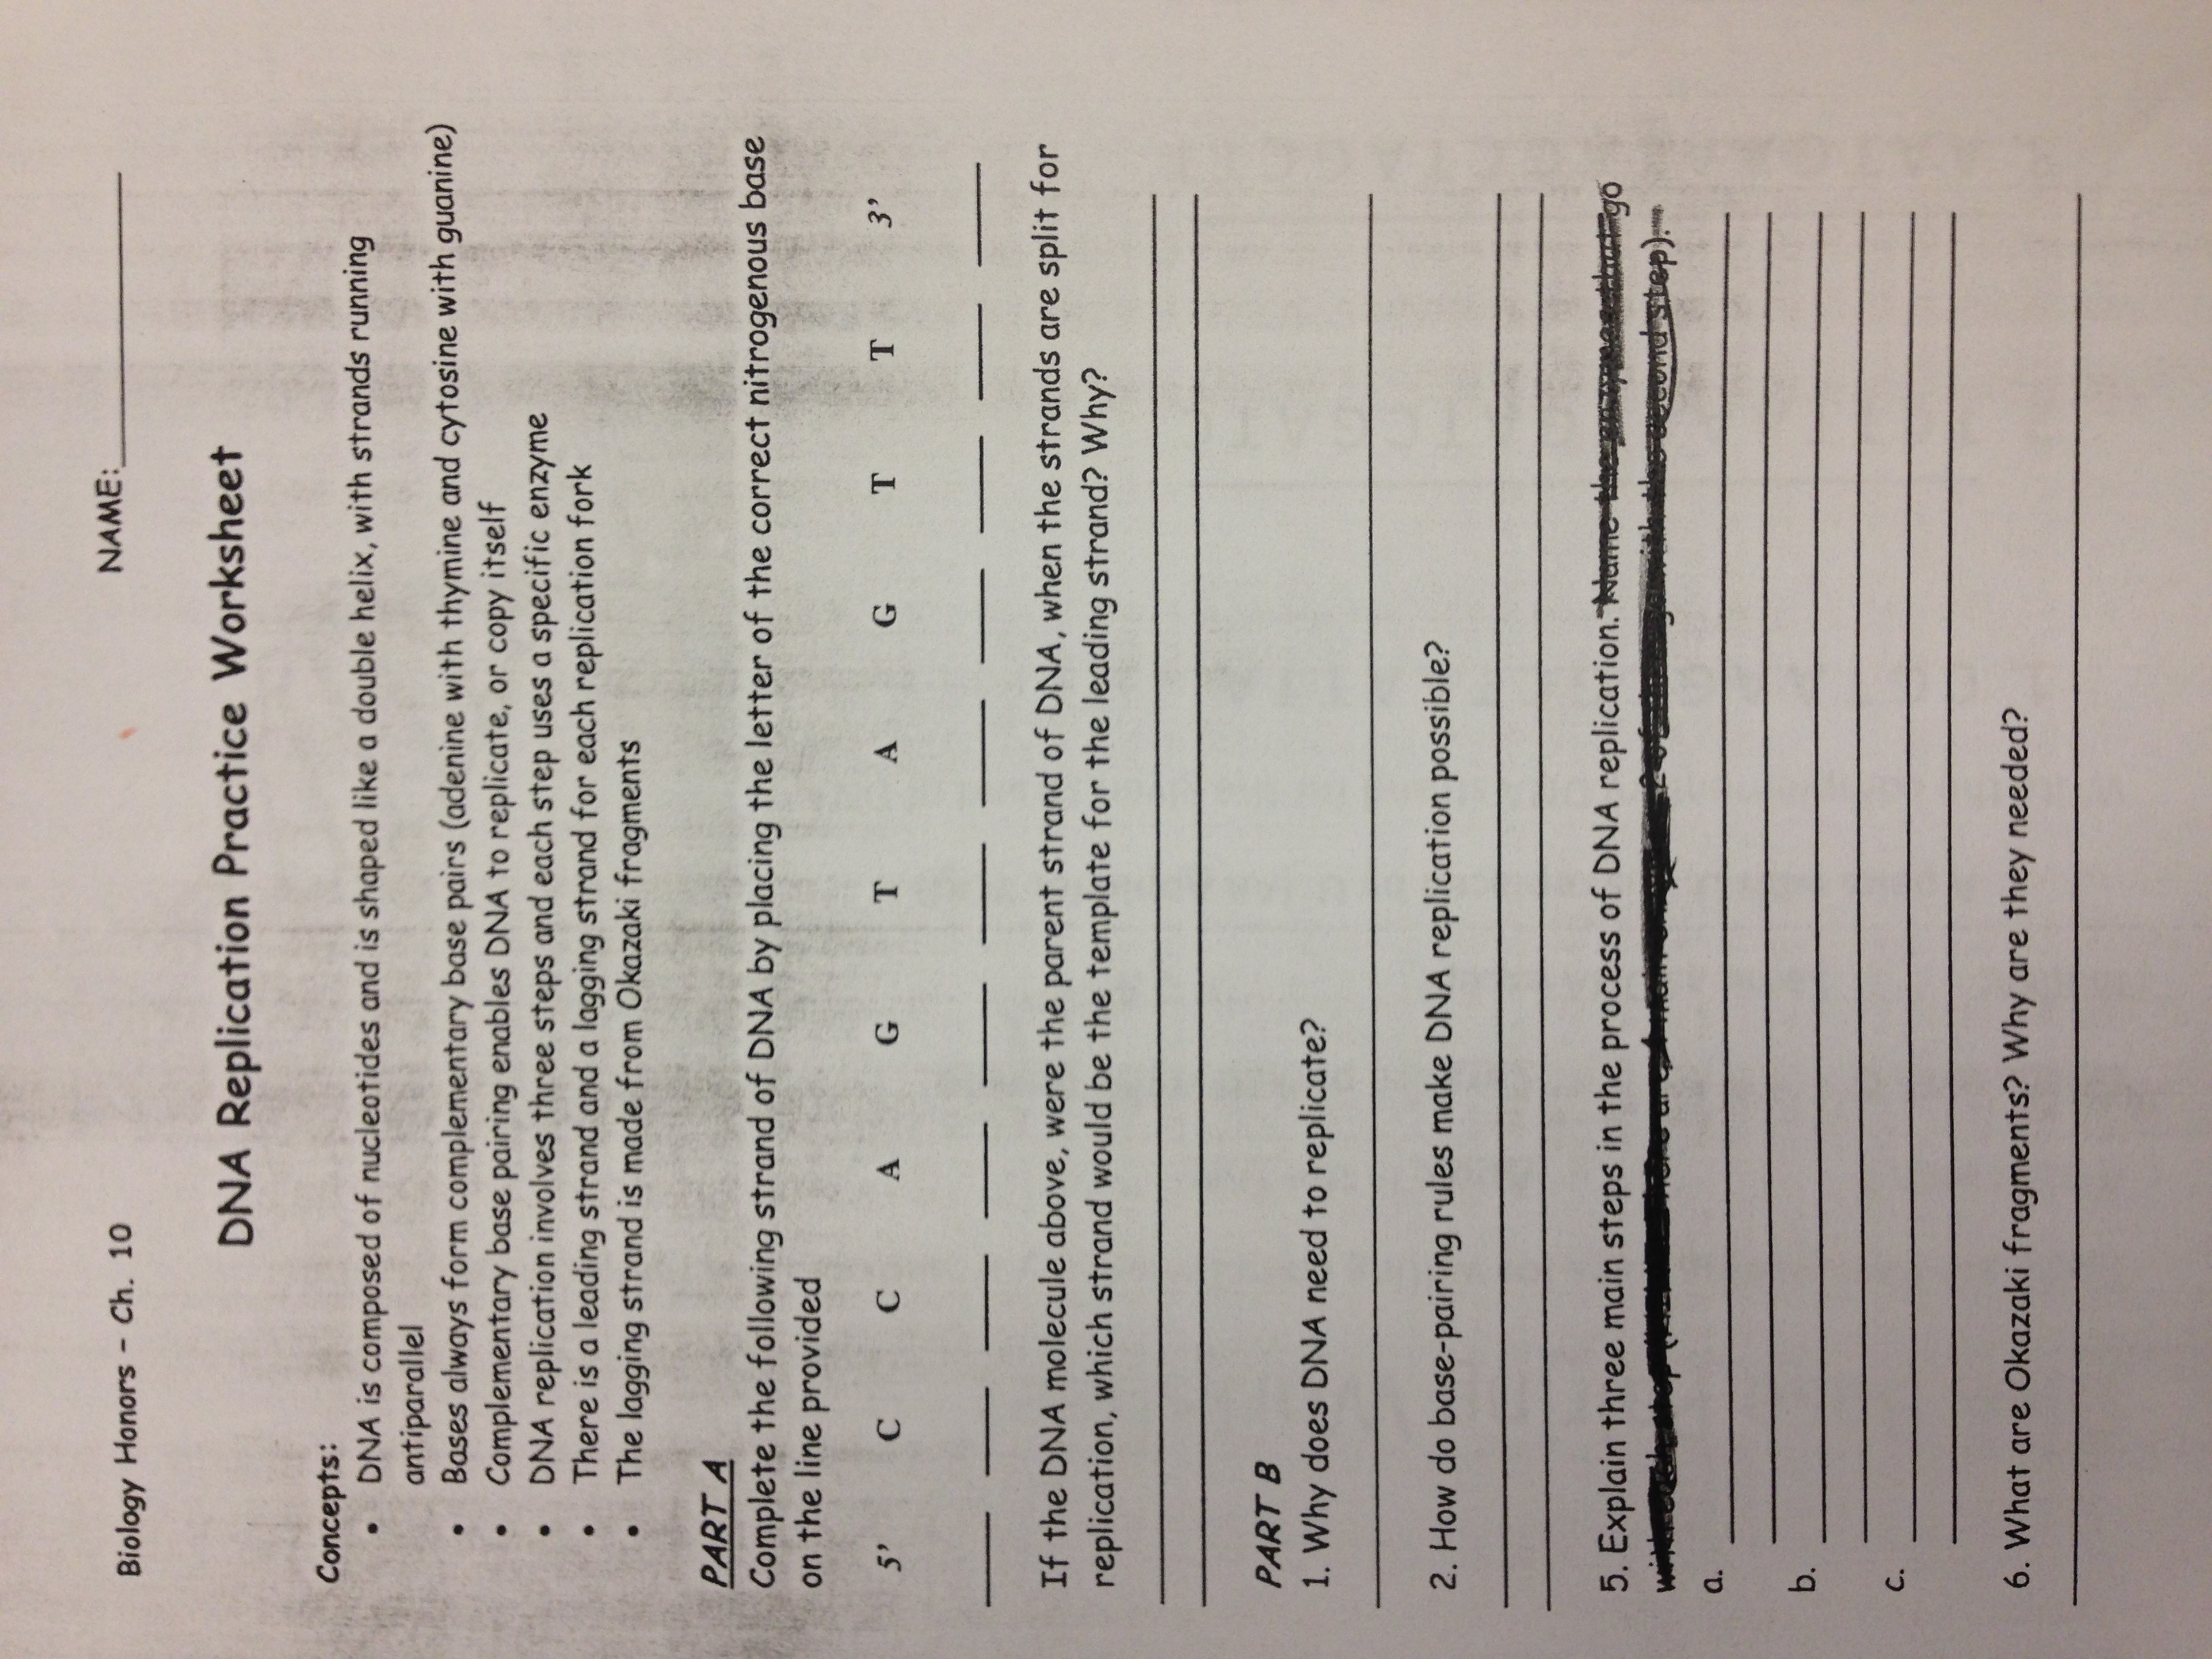 29 Rna And Protein Synthesis Gizmo Worksheet Answers